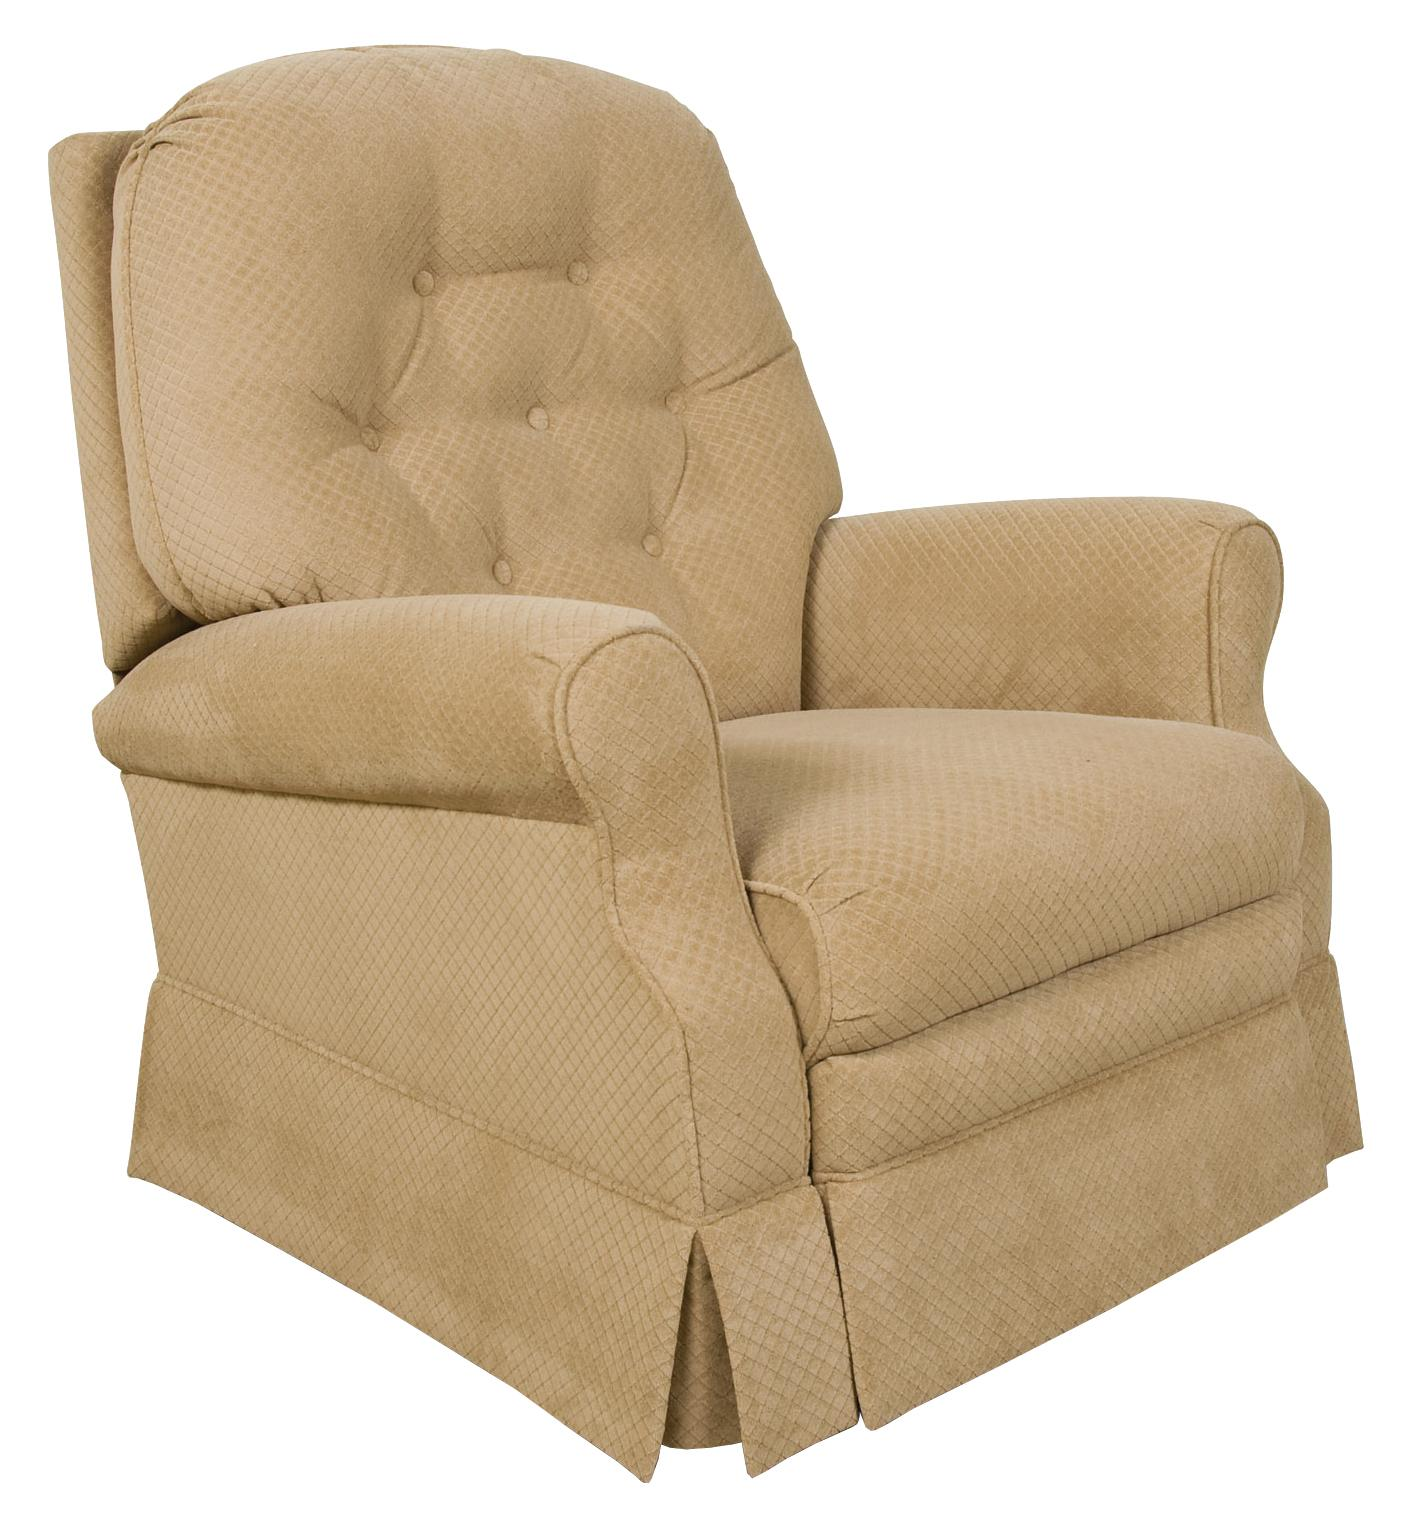 England Marisol Reclining Chair - Item Number: 310-32